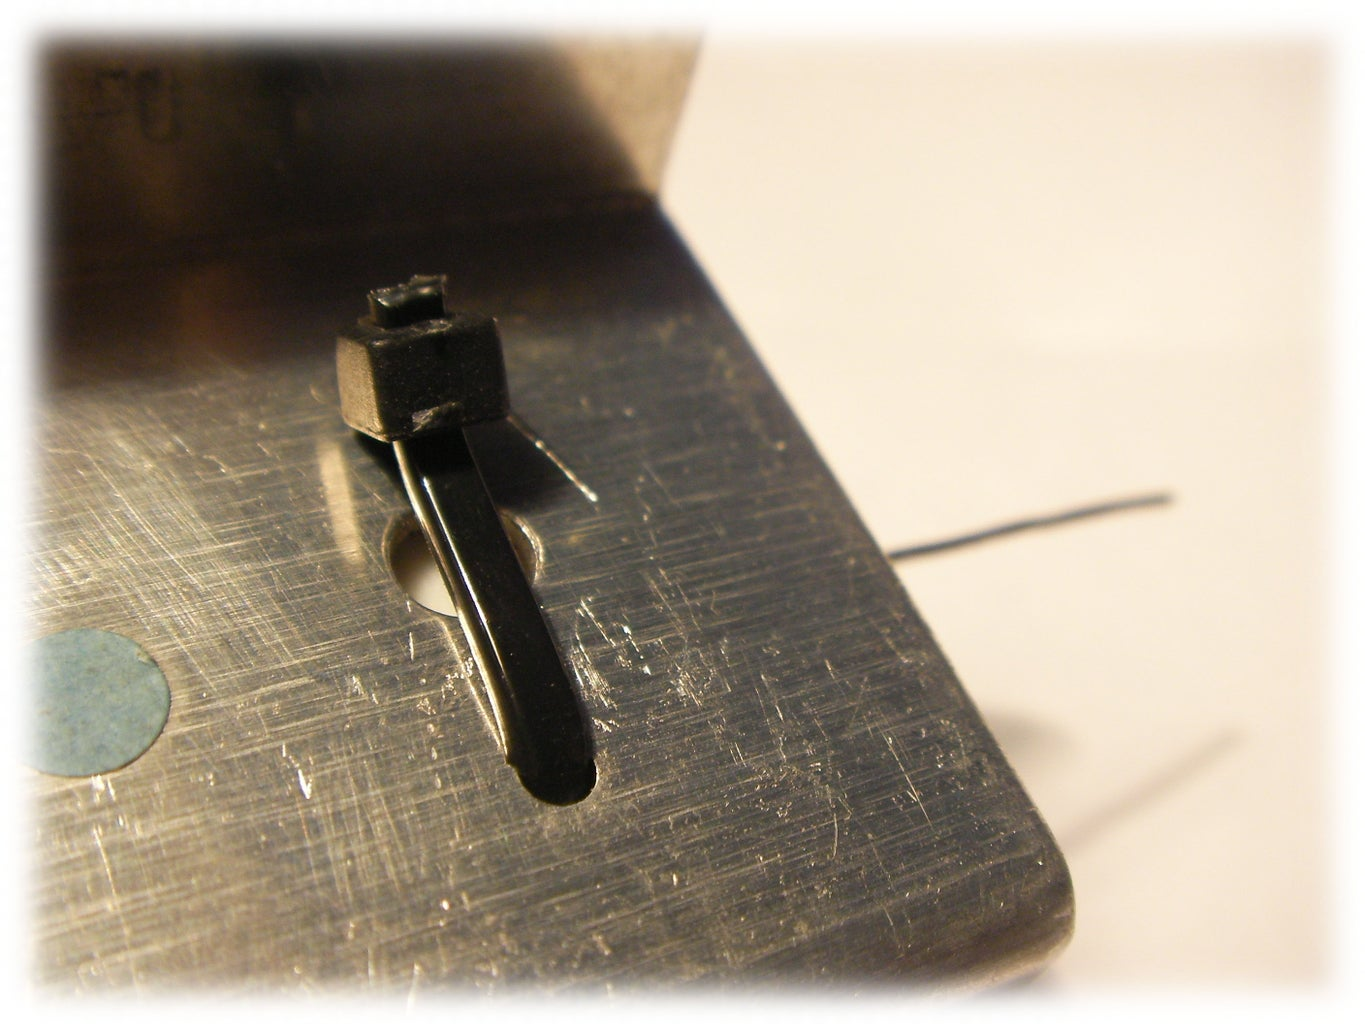 Fitting the Wirewound Resistor